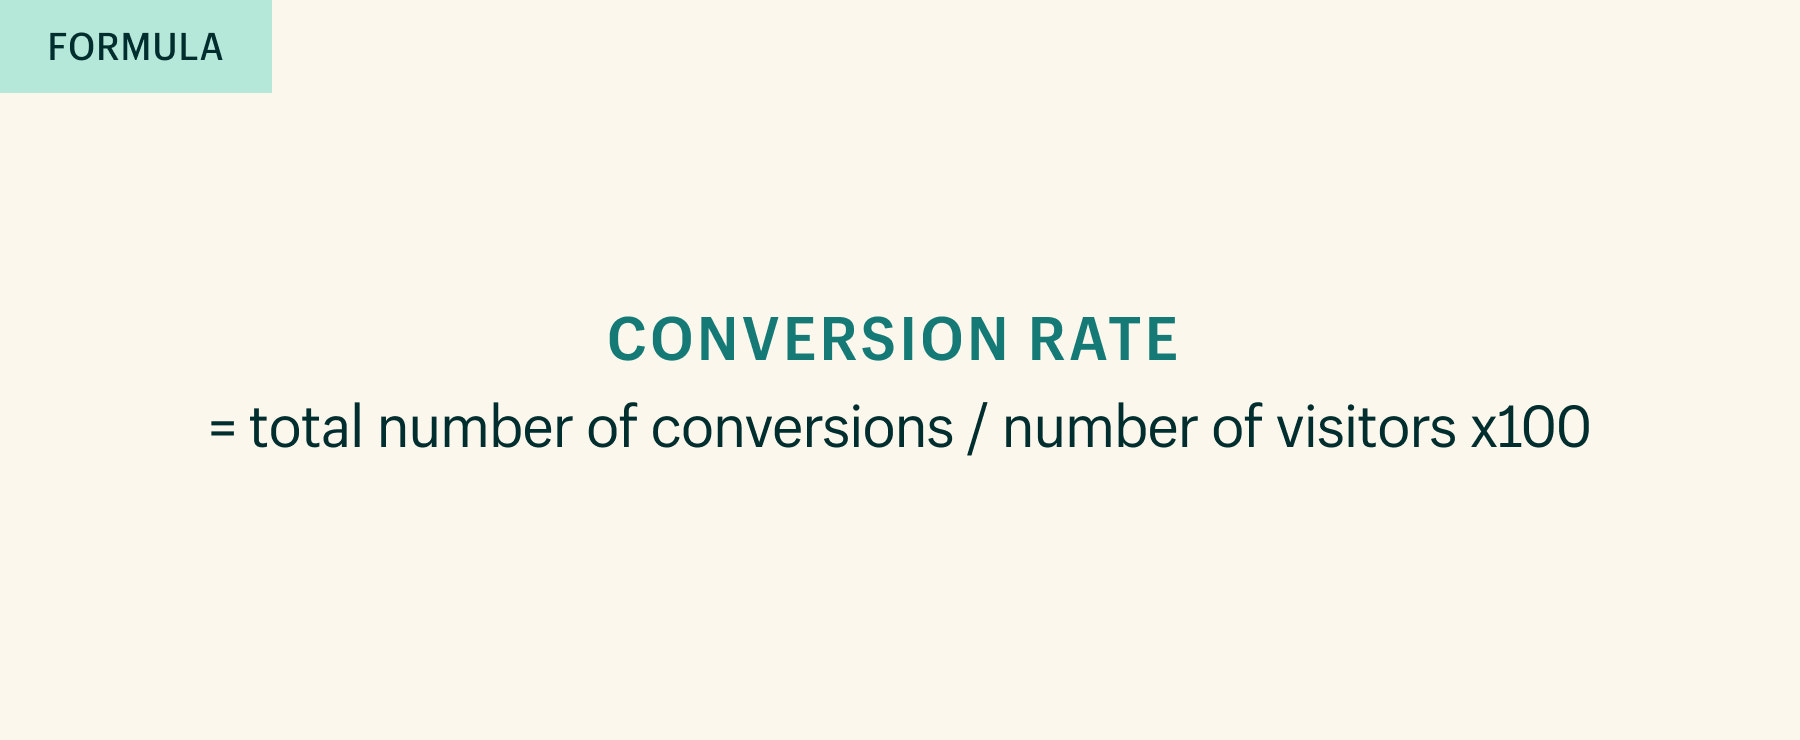 Conversion rate = total number of conversions / number of visitors) x 100